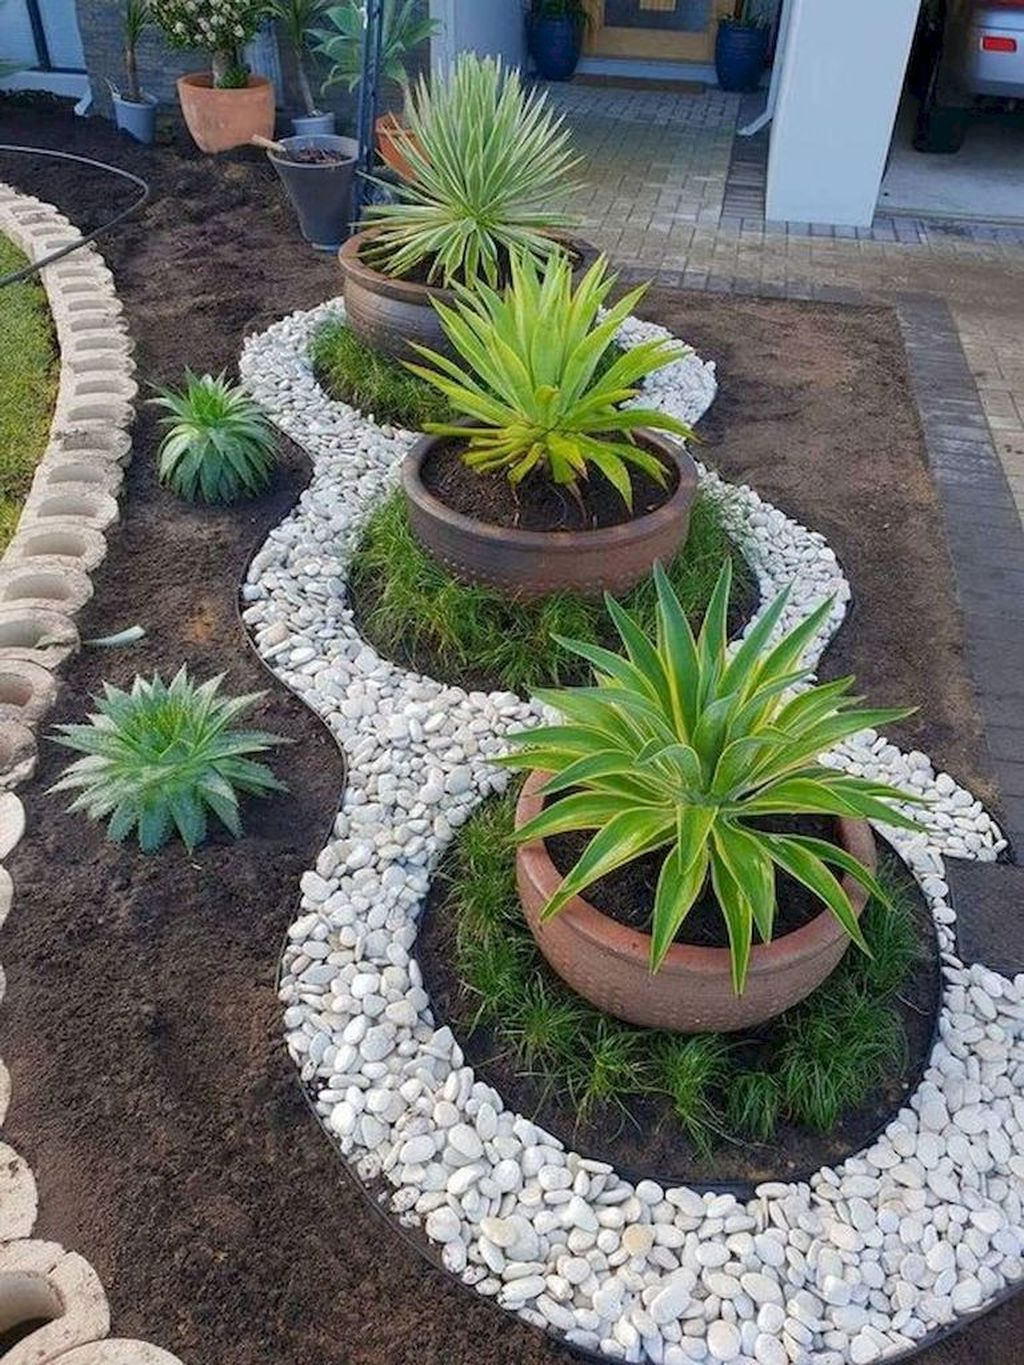 Captivating Diy Patio Gardens Ideas On A Budget To Try 02